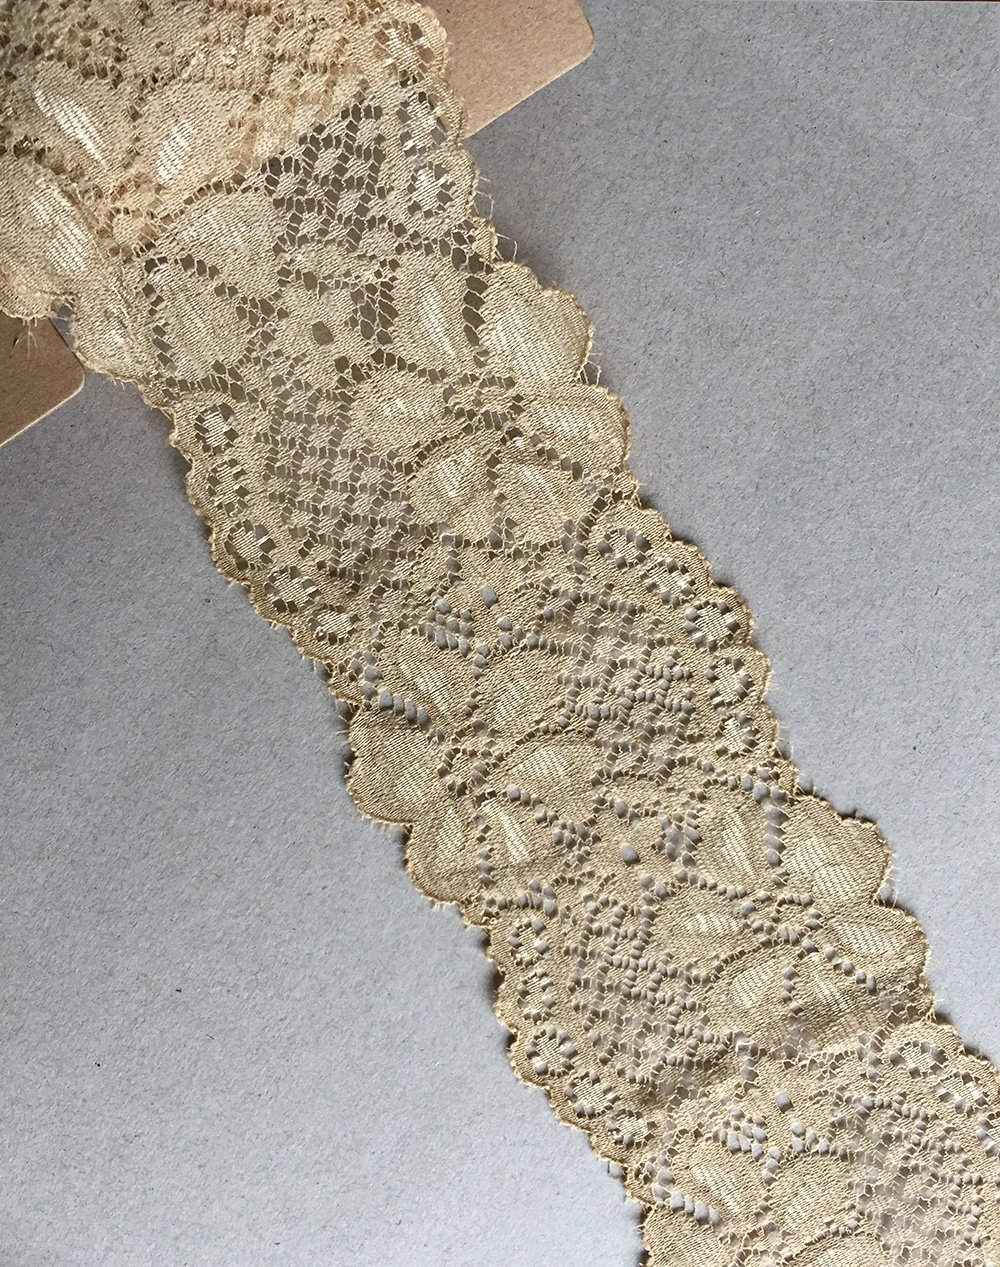 LACE REALM 2.5″ × 10 Yards Stretch Floral Pattern Lace Ribbon Trim Lace for Headbands Garters Decorating Floral Designing & Crafts (Ivory) jin xiang yu zhen fang you xian gong si